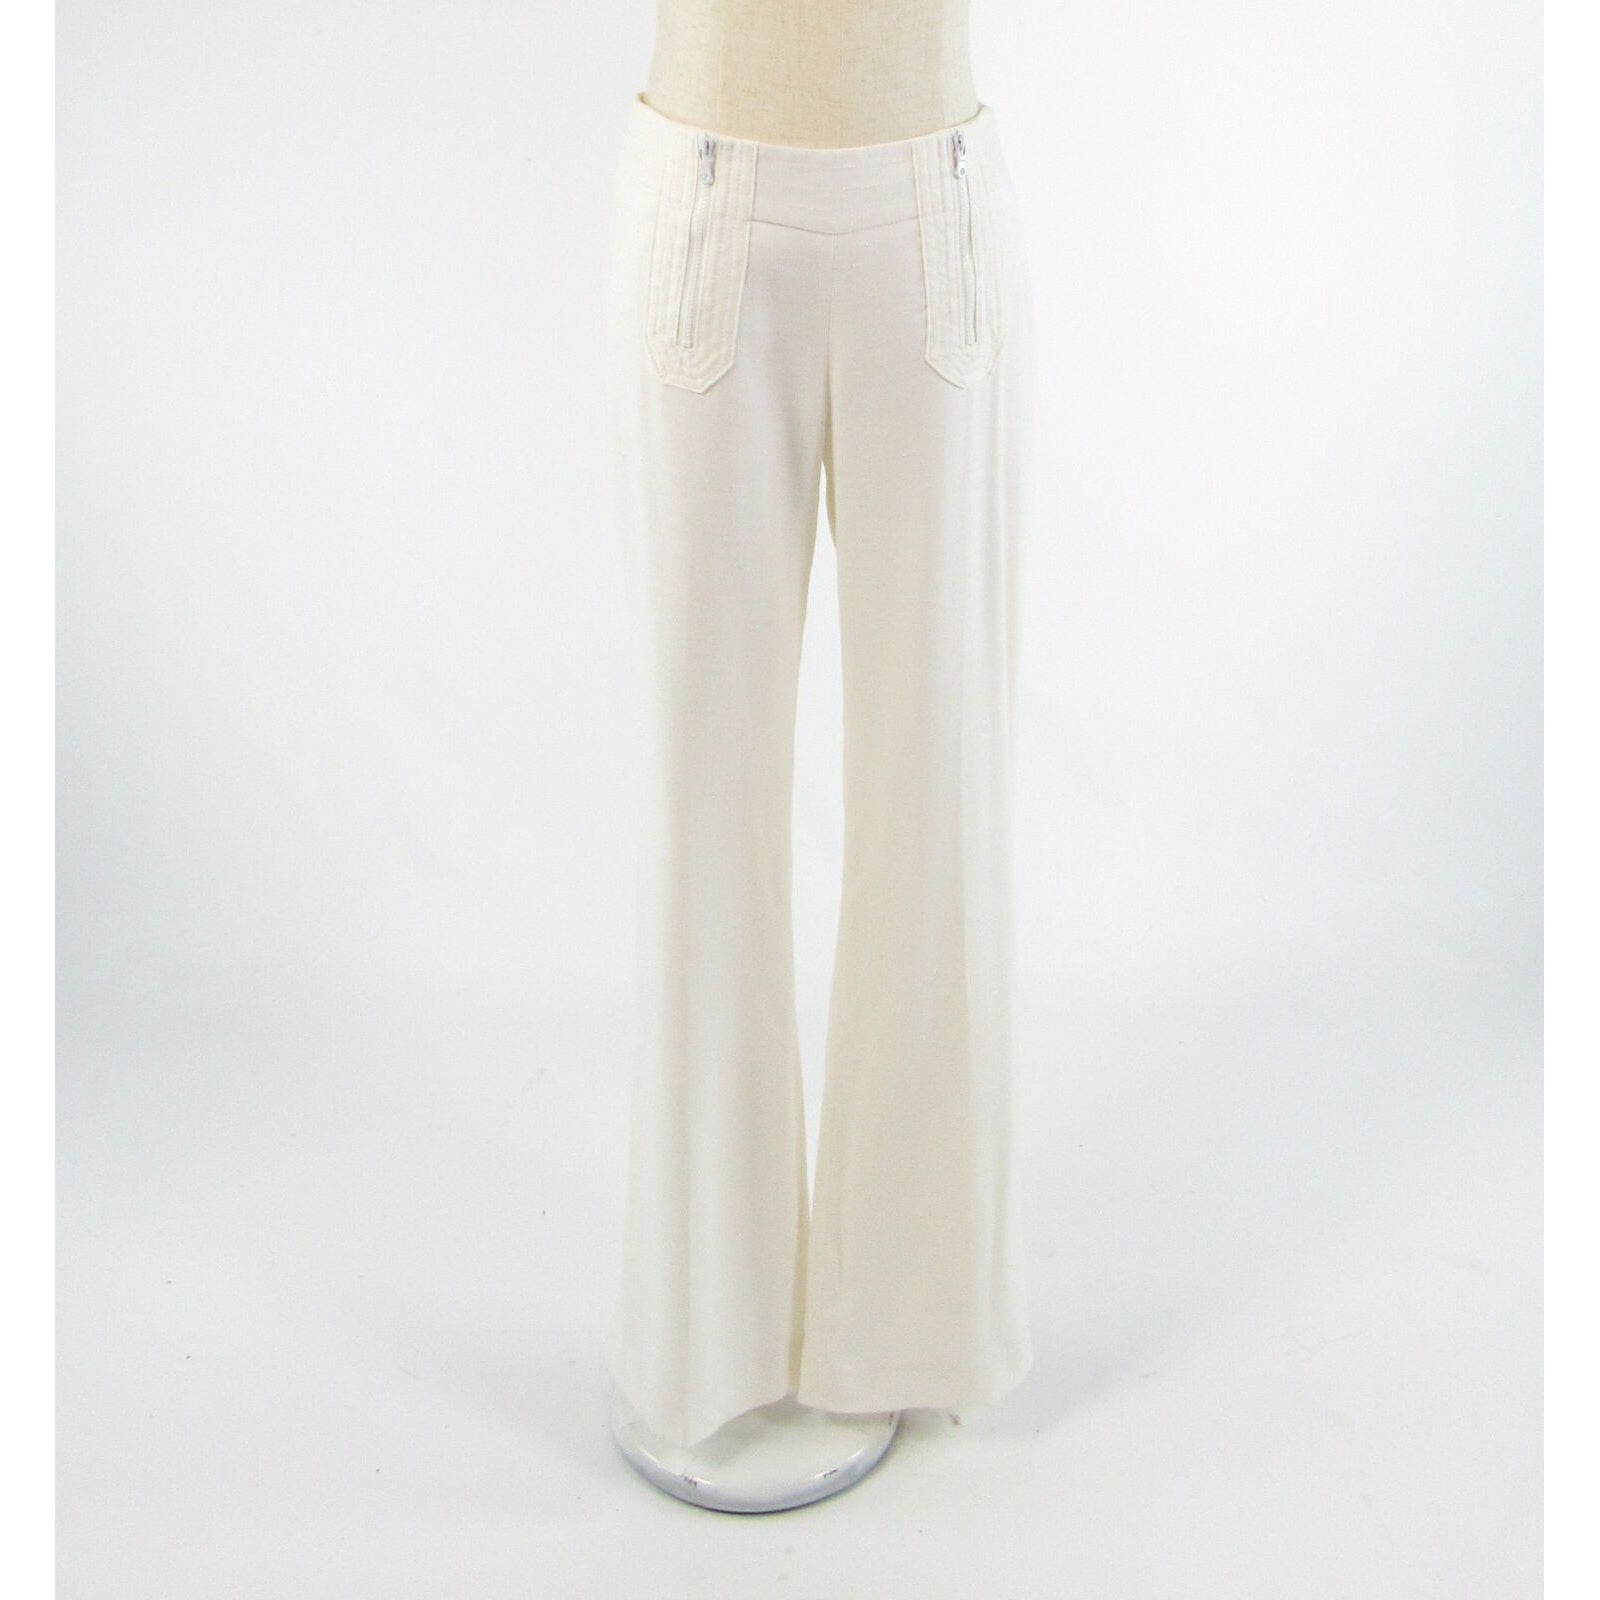 Ivory ETCETERA stretch straight leg linen pants 2